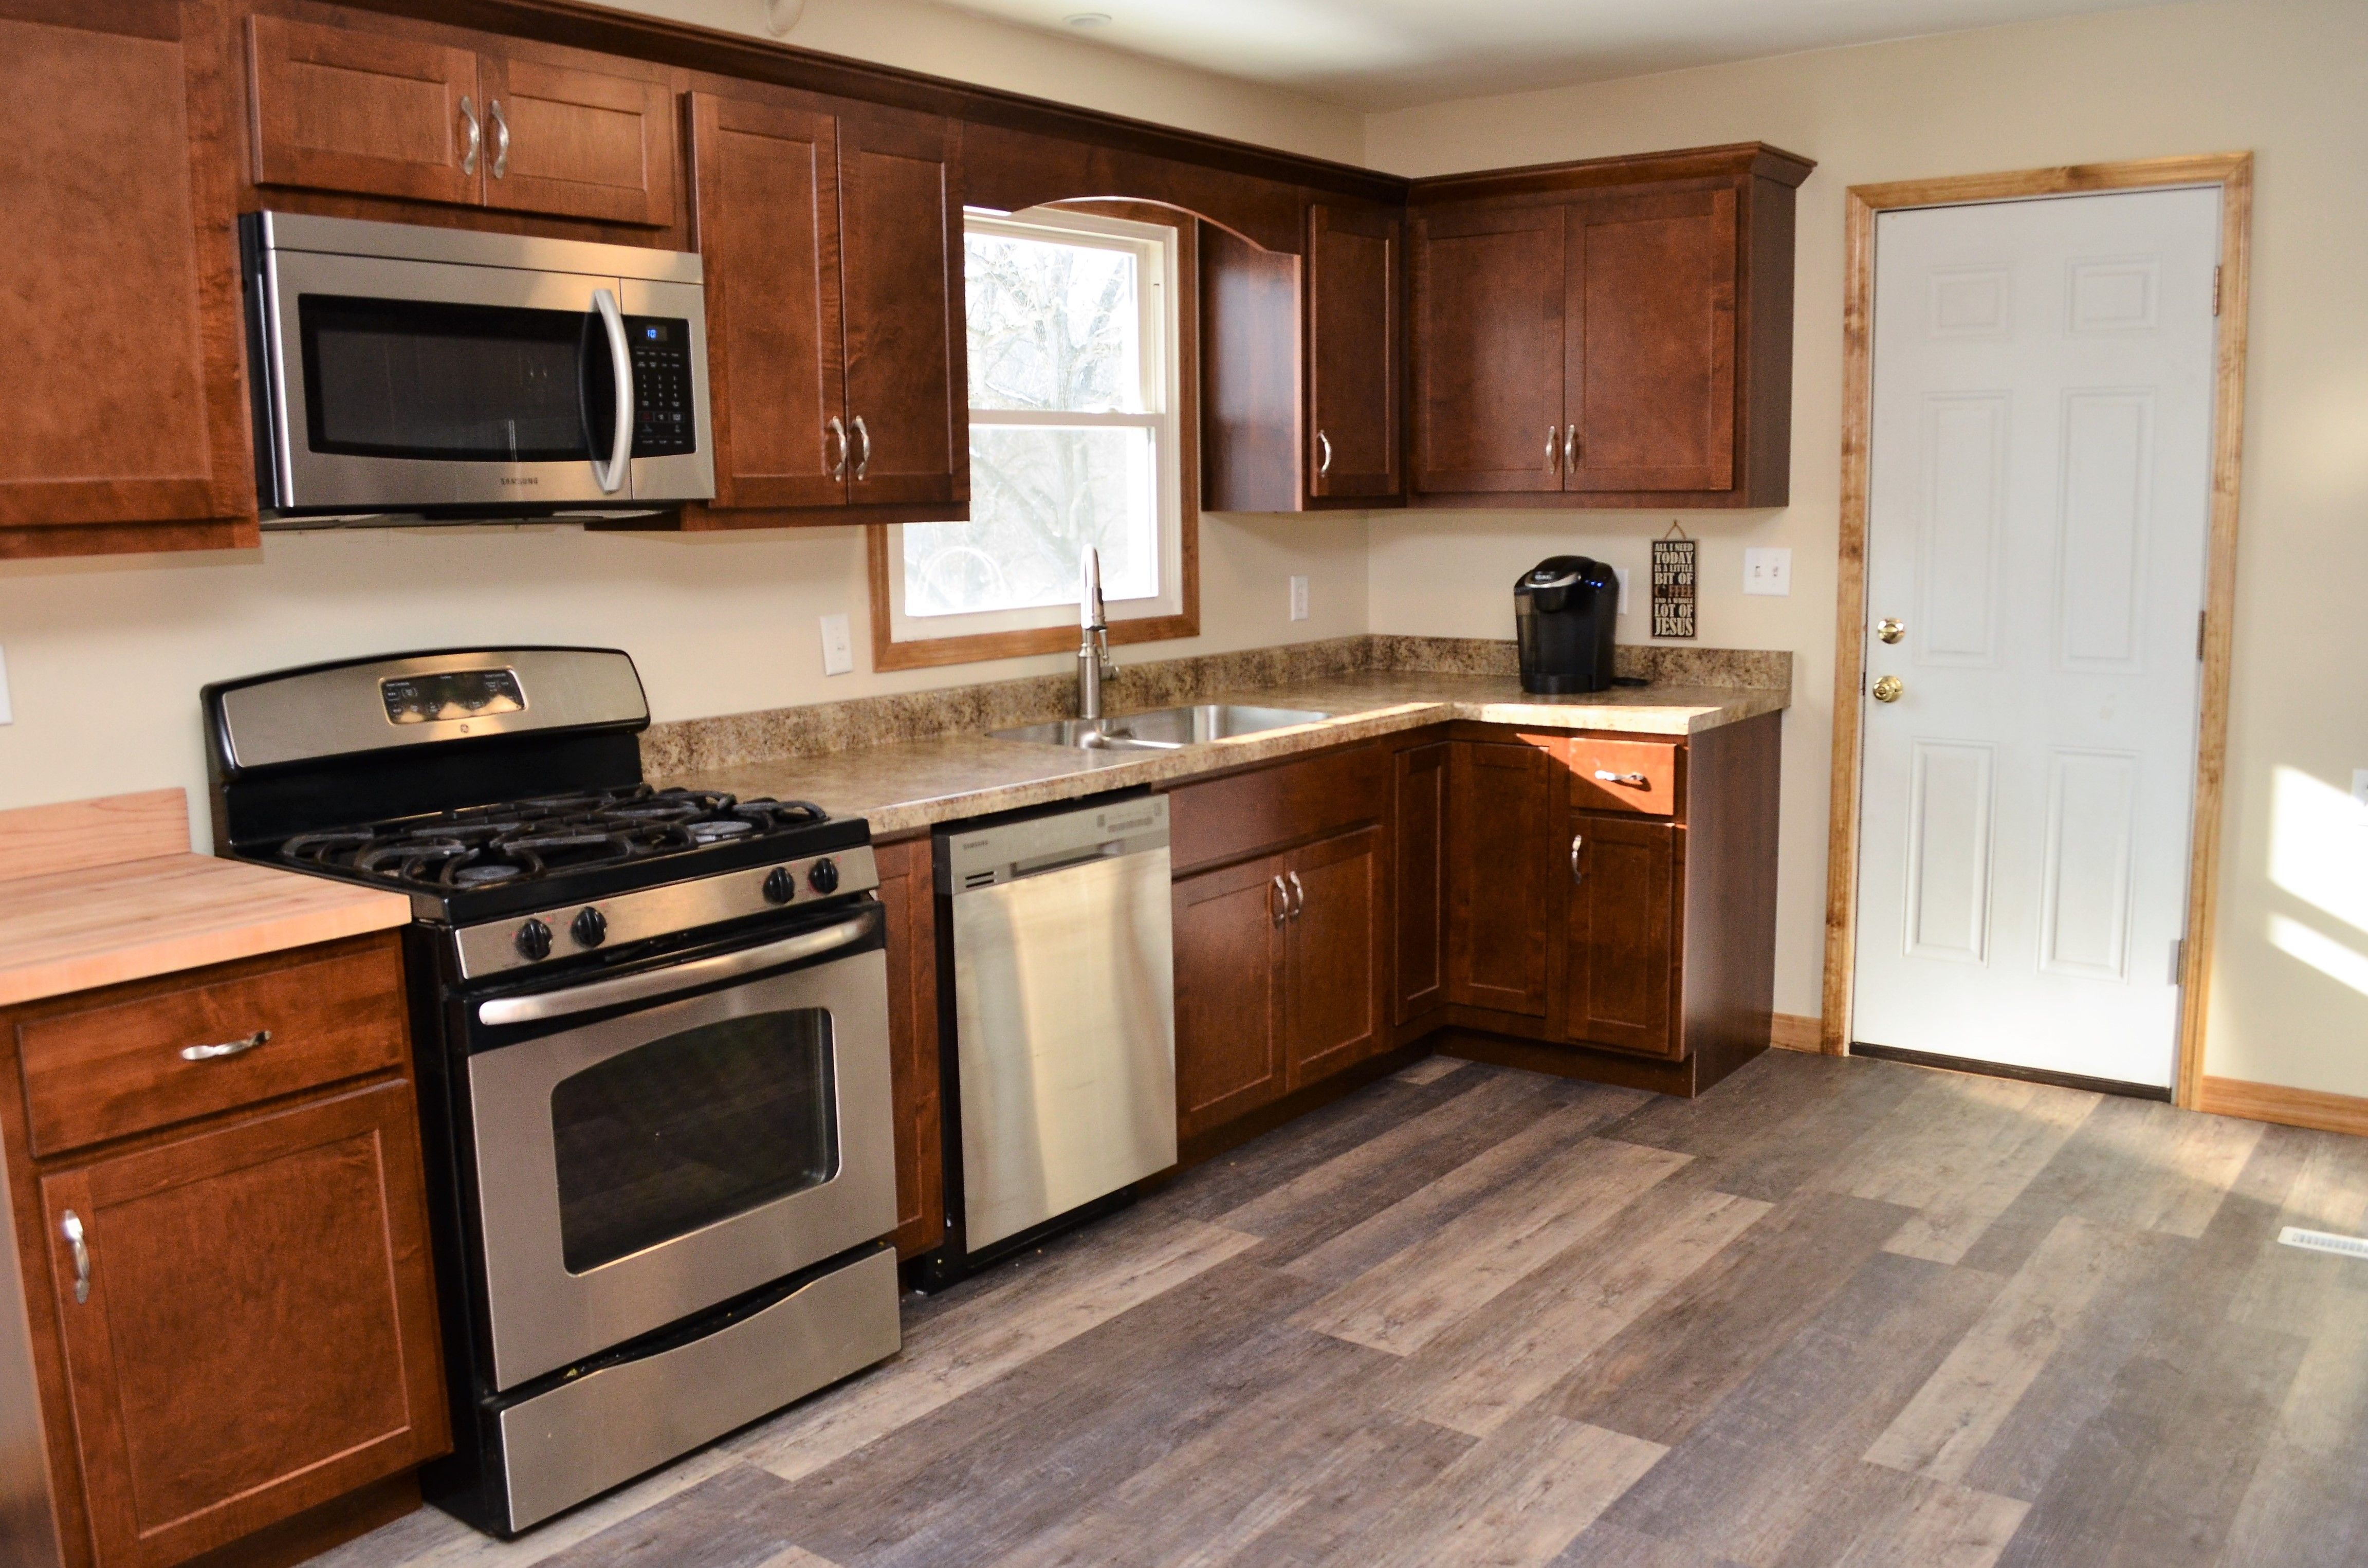 Baileytown Chesapeake Maple Espresso Maple Cabinets Cabinetry Kitchen Cabinets